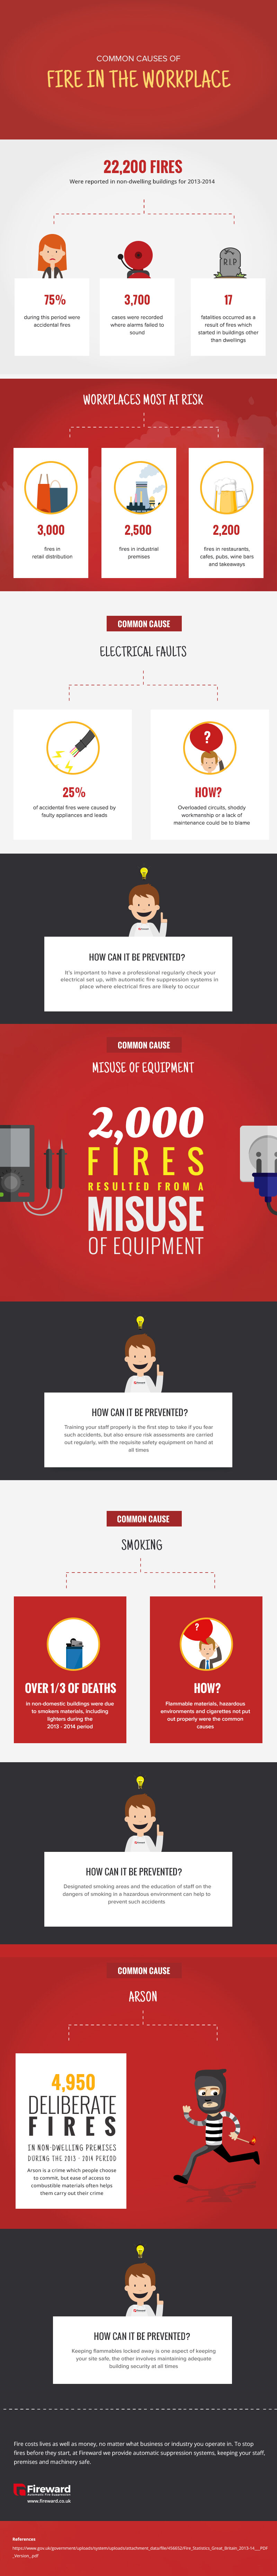 Infographic explaining common causes of fire in the workplace